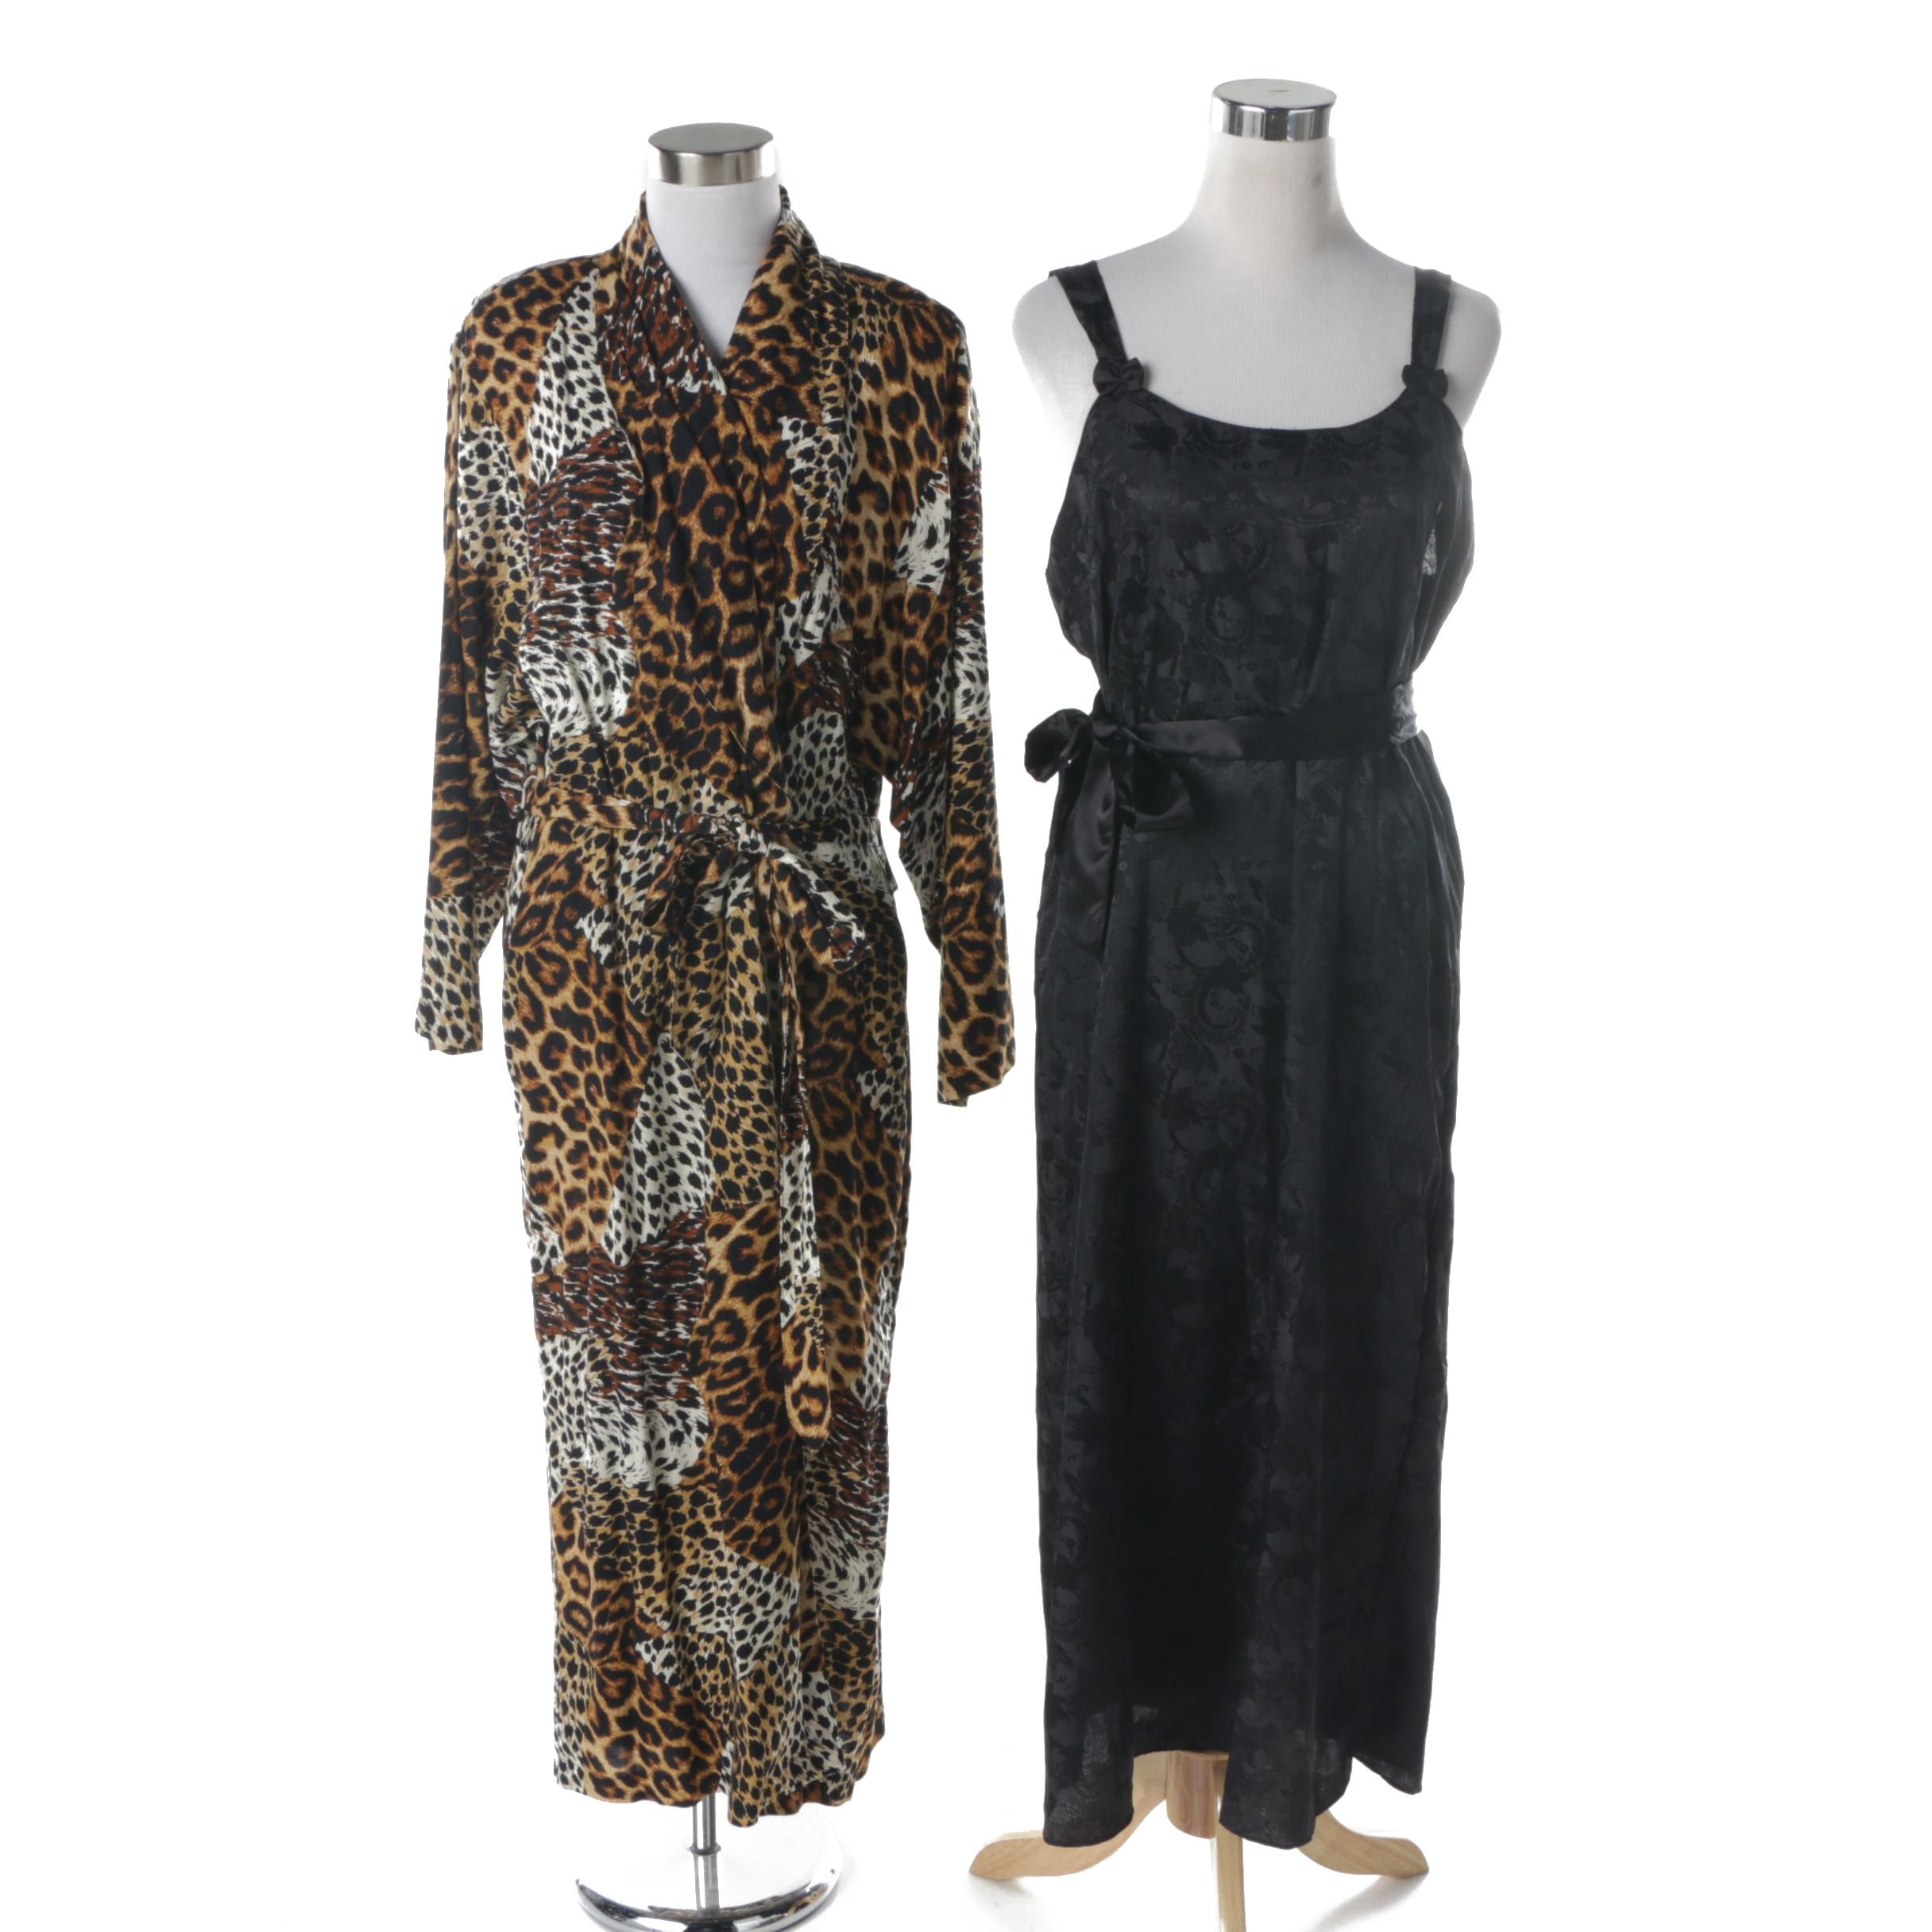 Animal Print Robe and Floral Nightgown Including Victoria's Secret